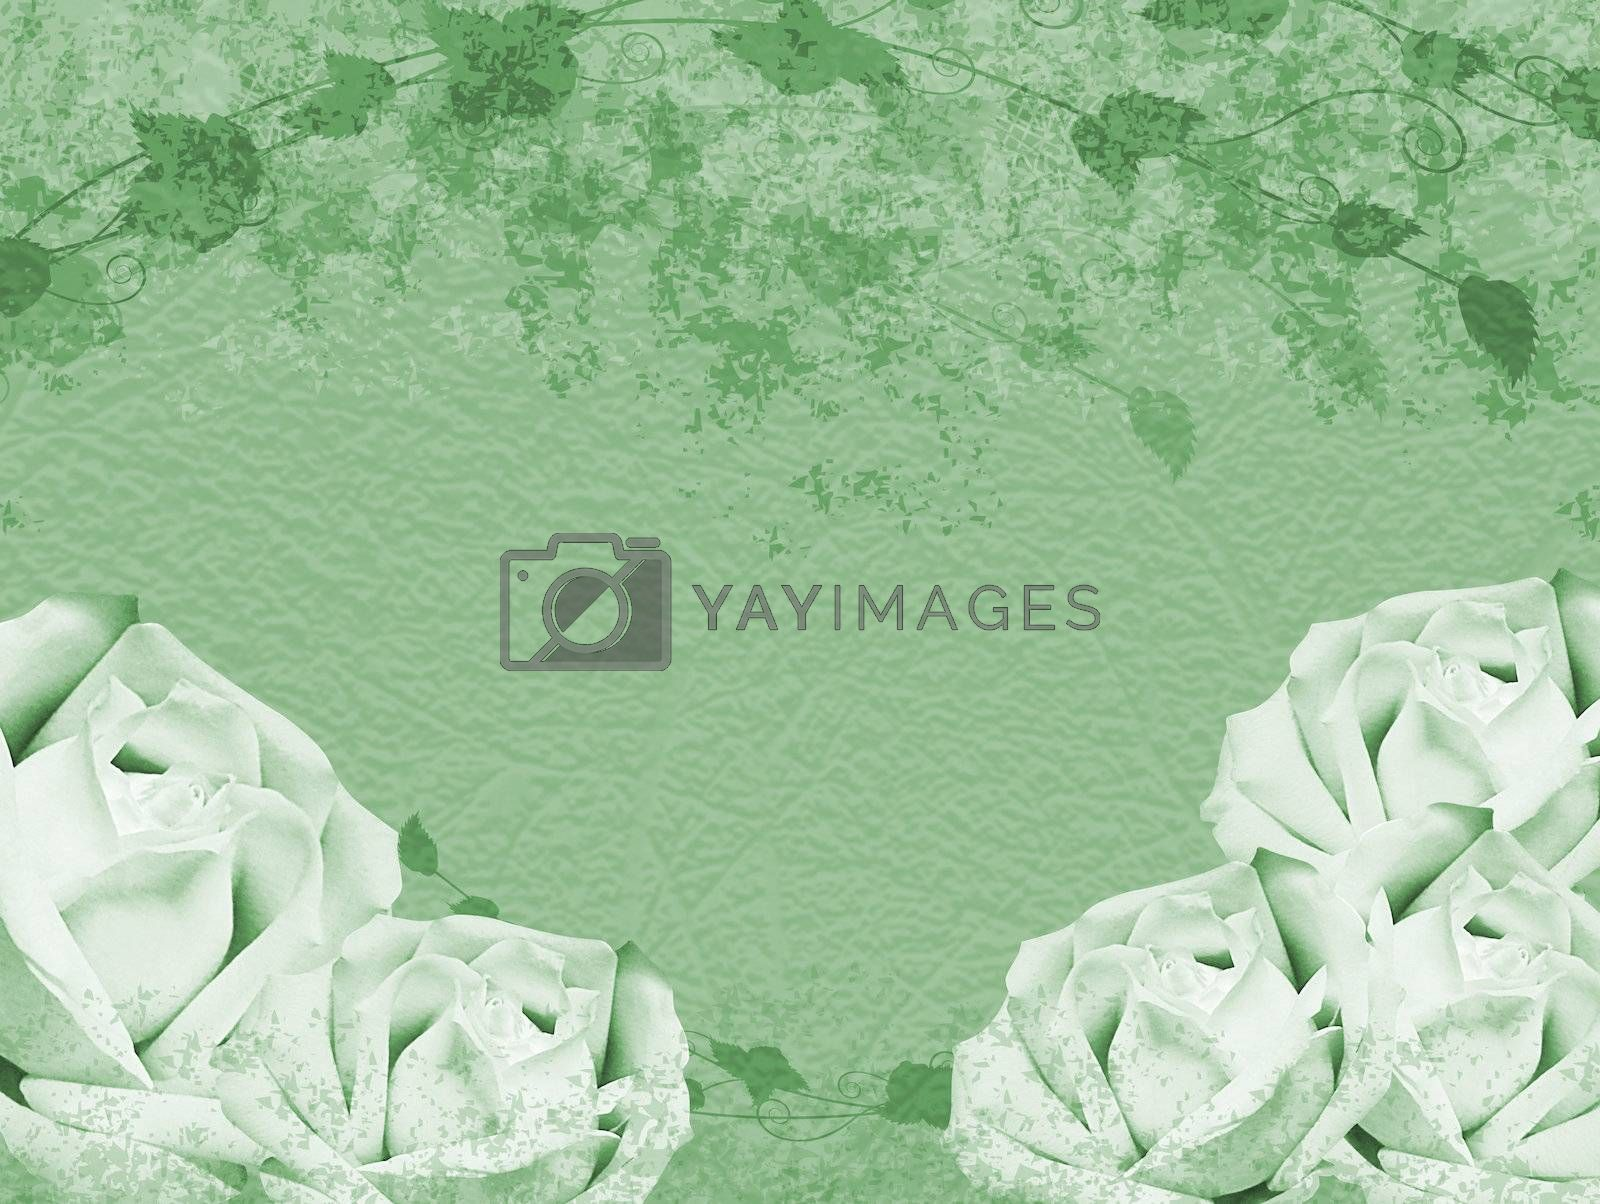 Textured roses background with space for text